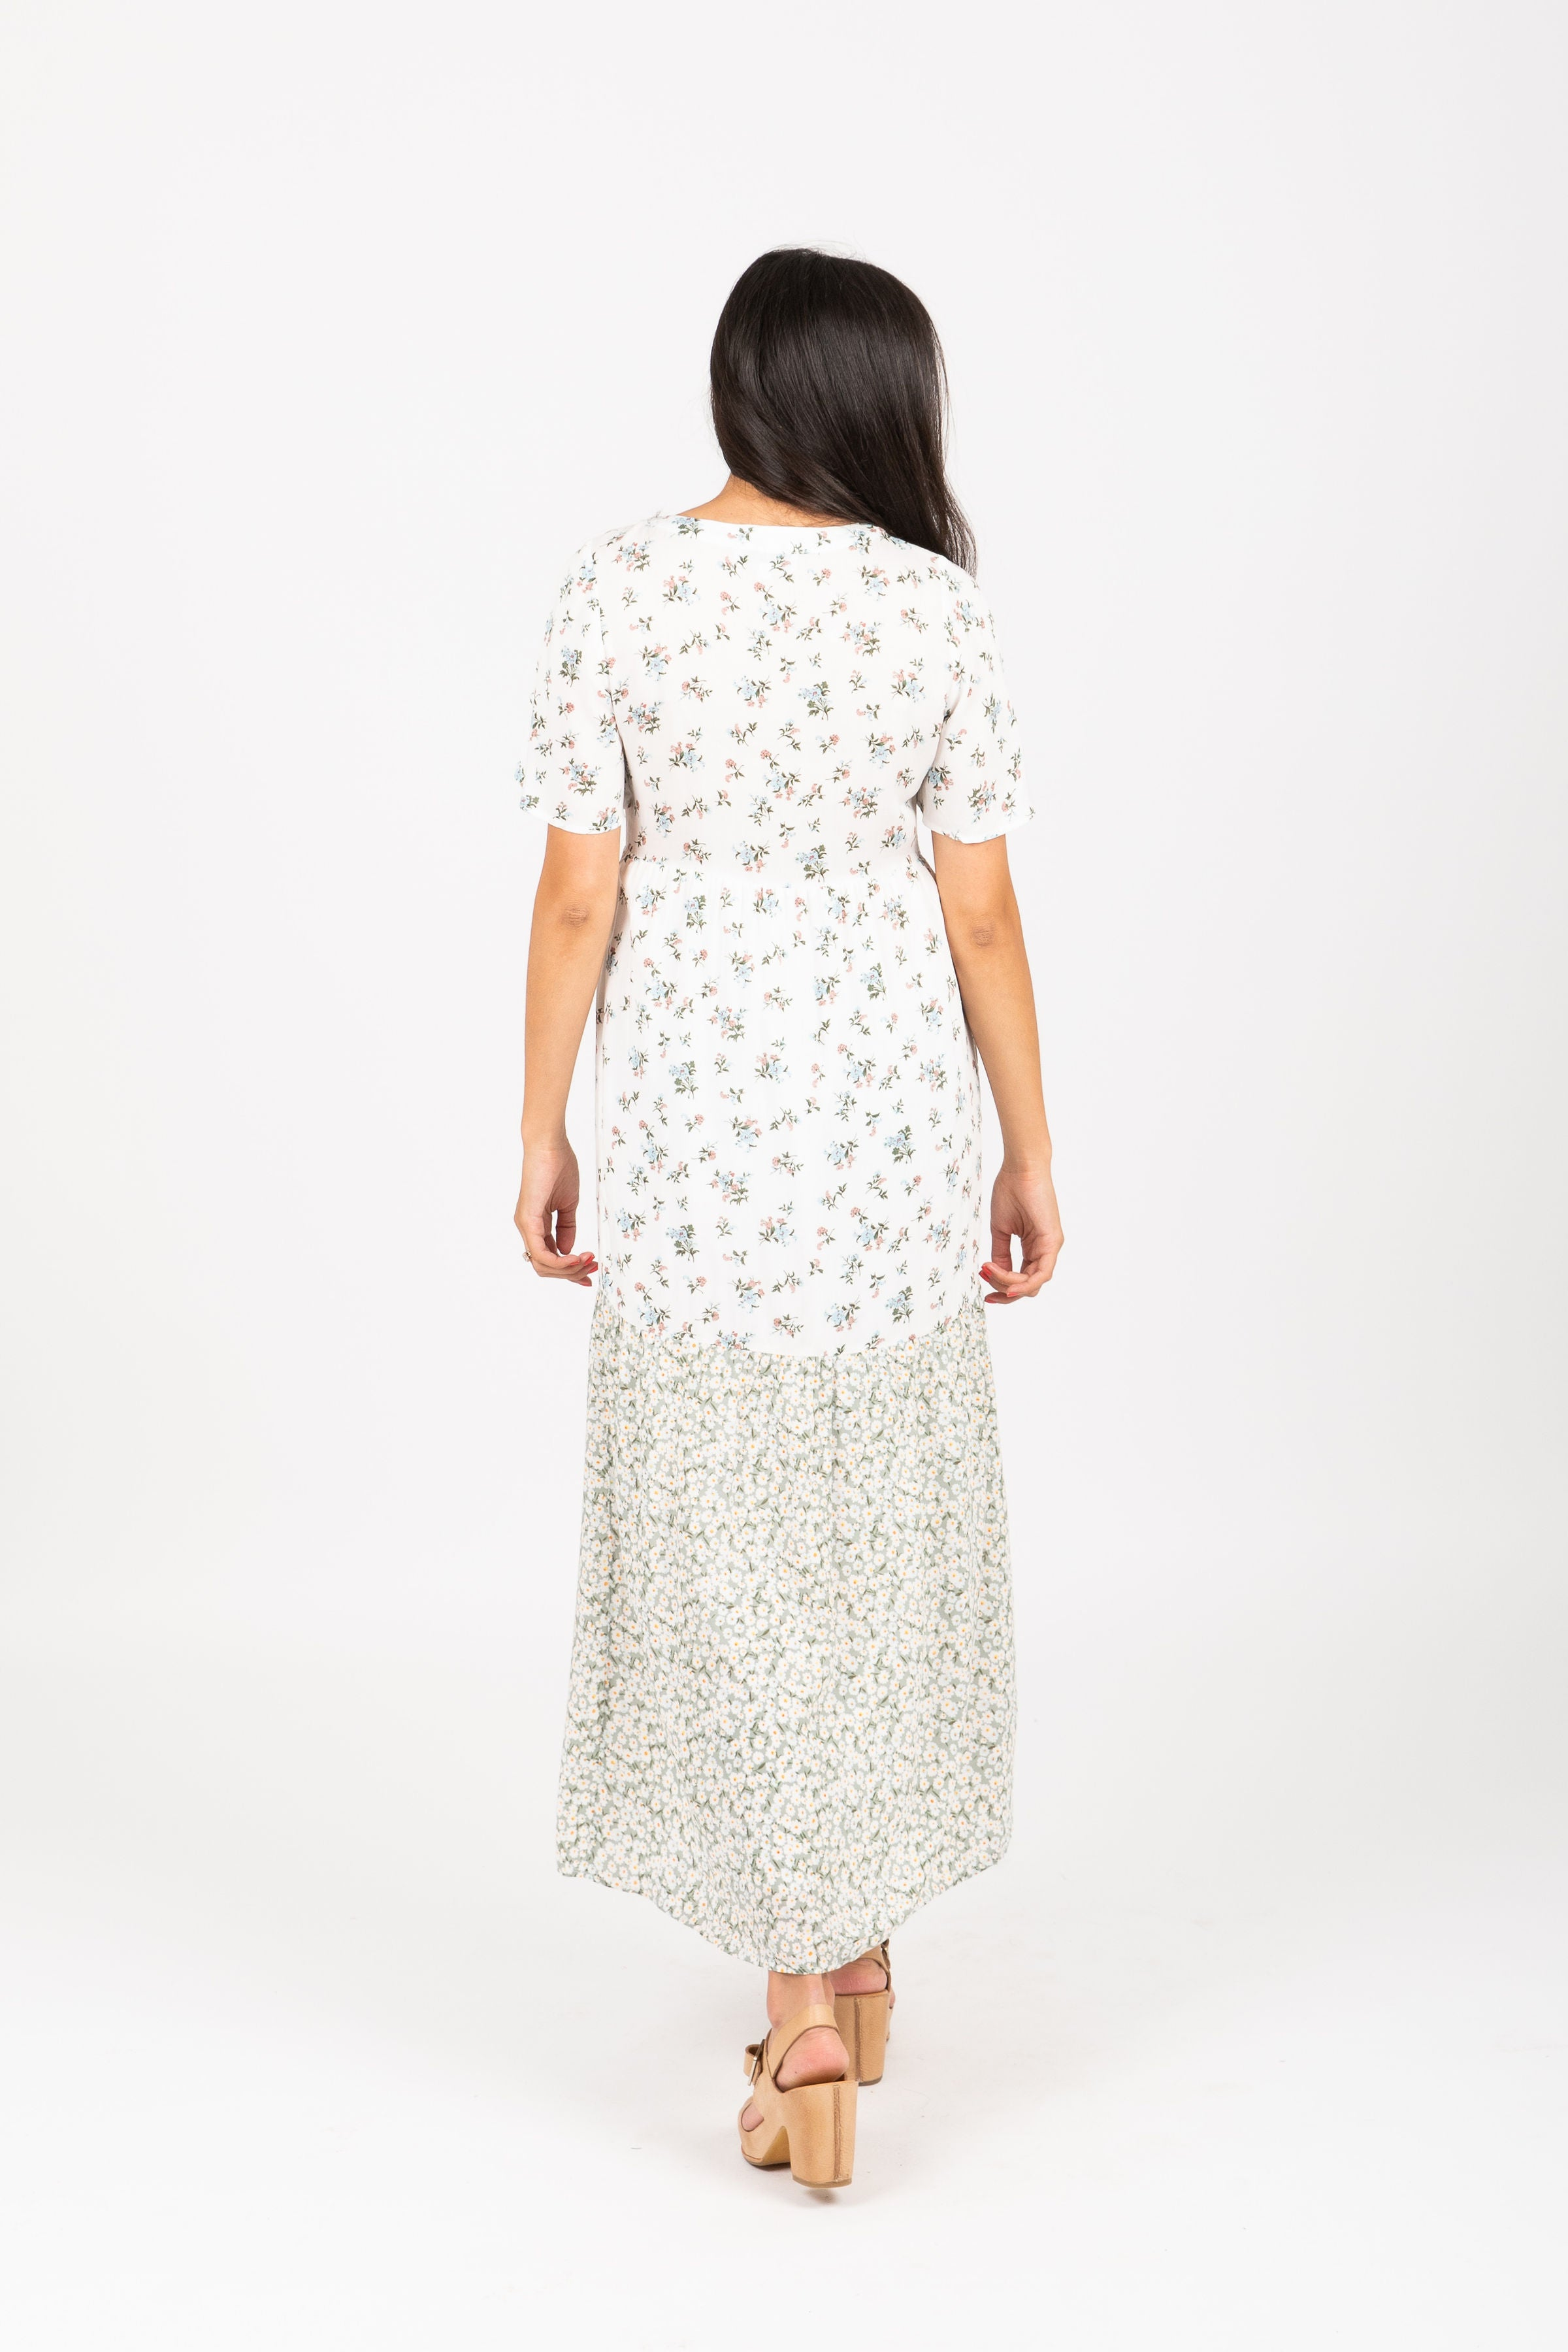 The Odyssey Floral Contrast Maxi Dress in Sage